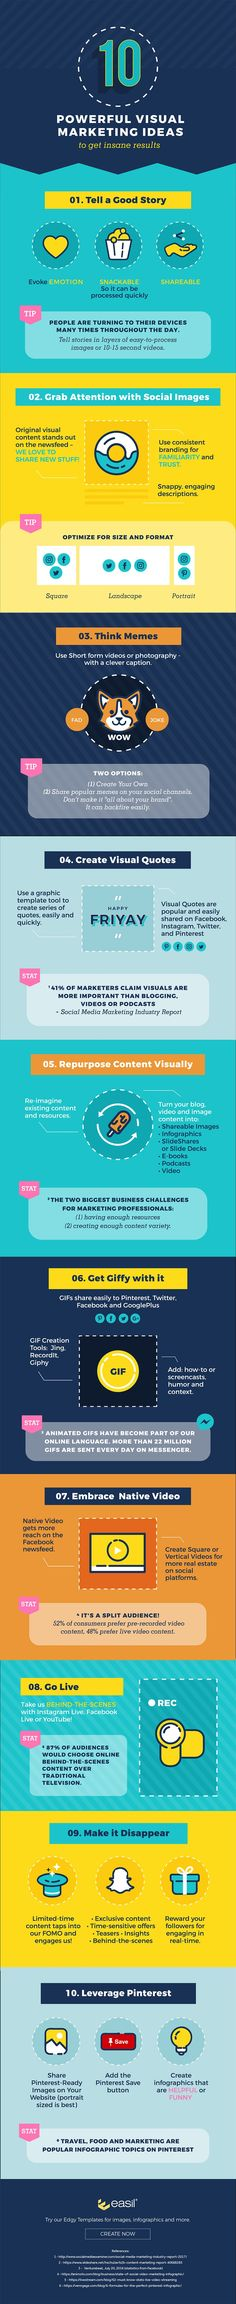 10 Powerful Visual Marketing Ideas to Get Insane Results #Infographic #ContentMarketing #Marketing